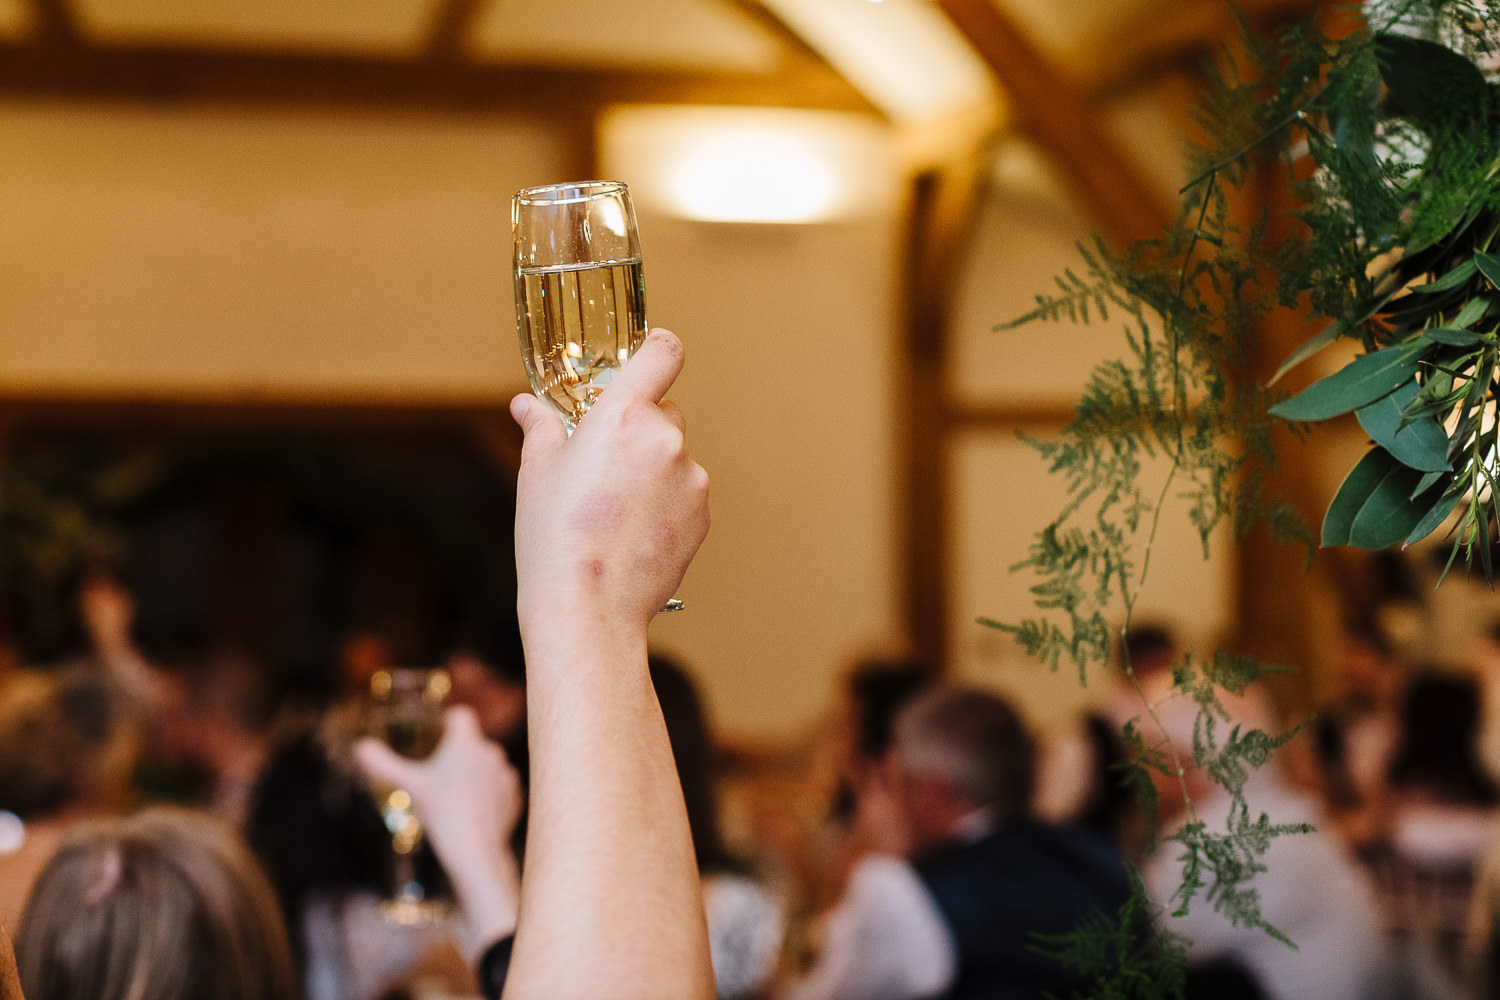 Drink in the air for a toast